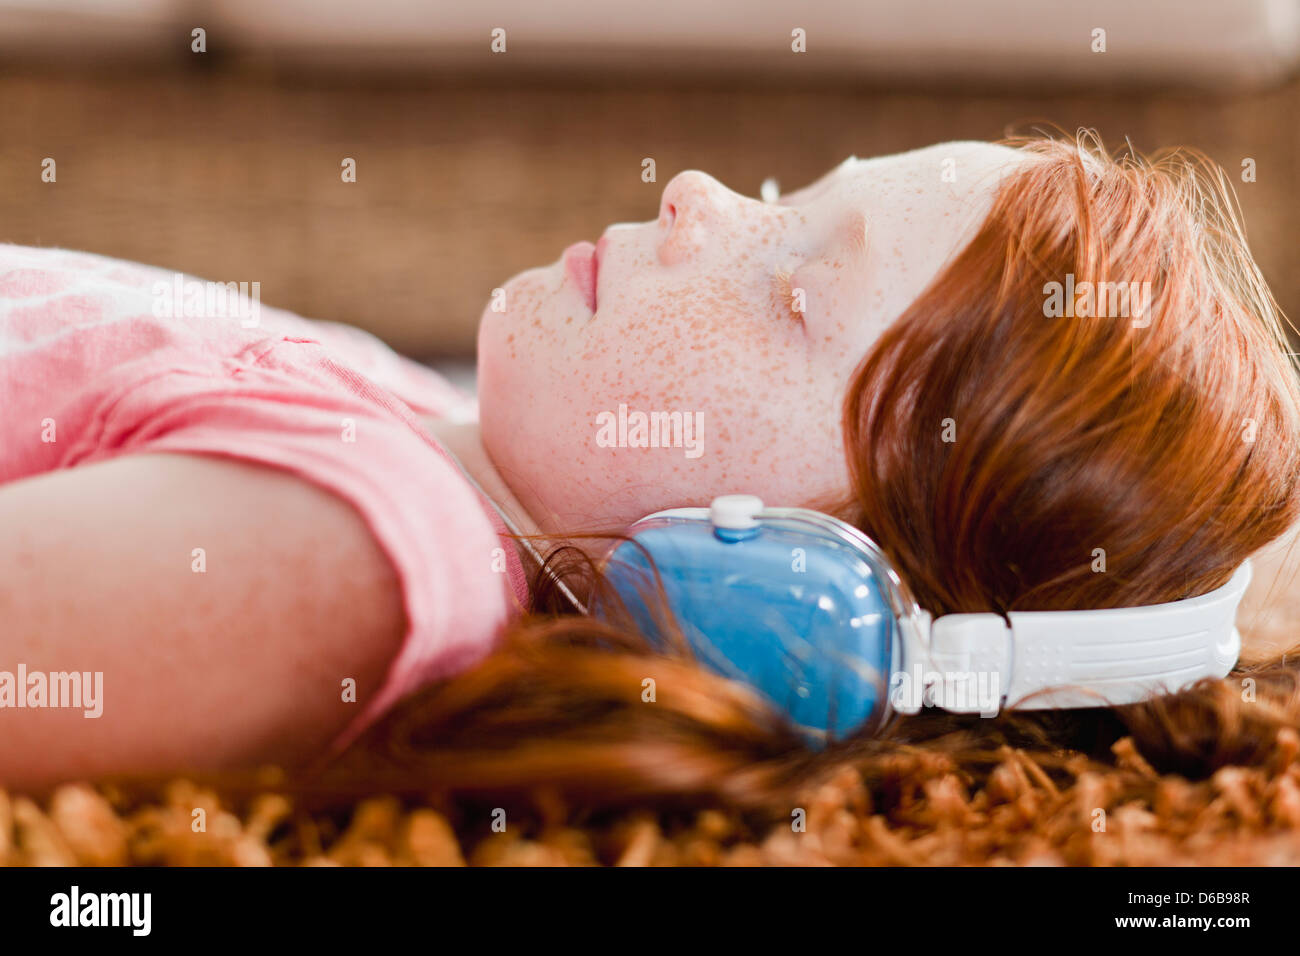 Girl listening to headphones on carpet - Stock Image